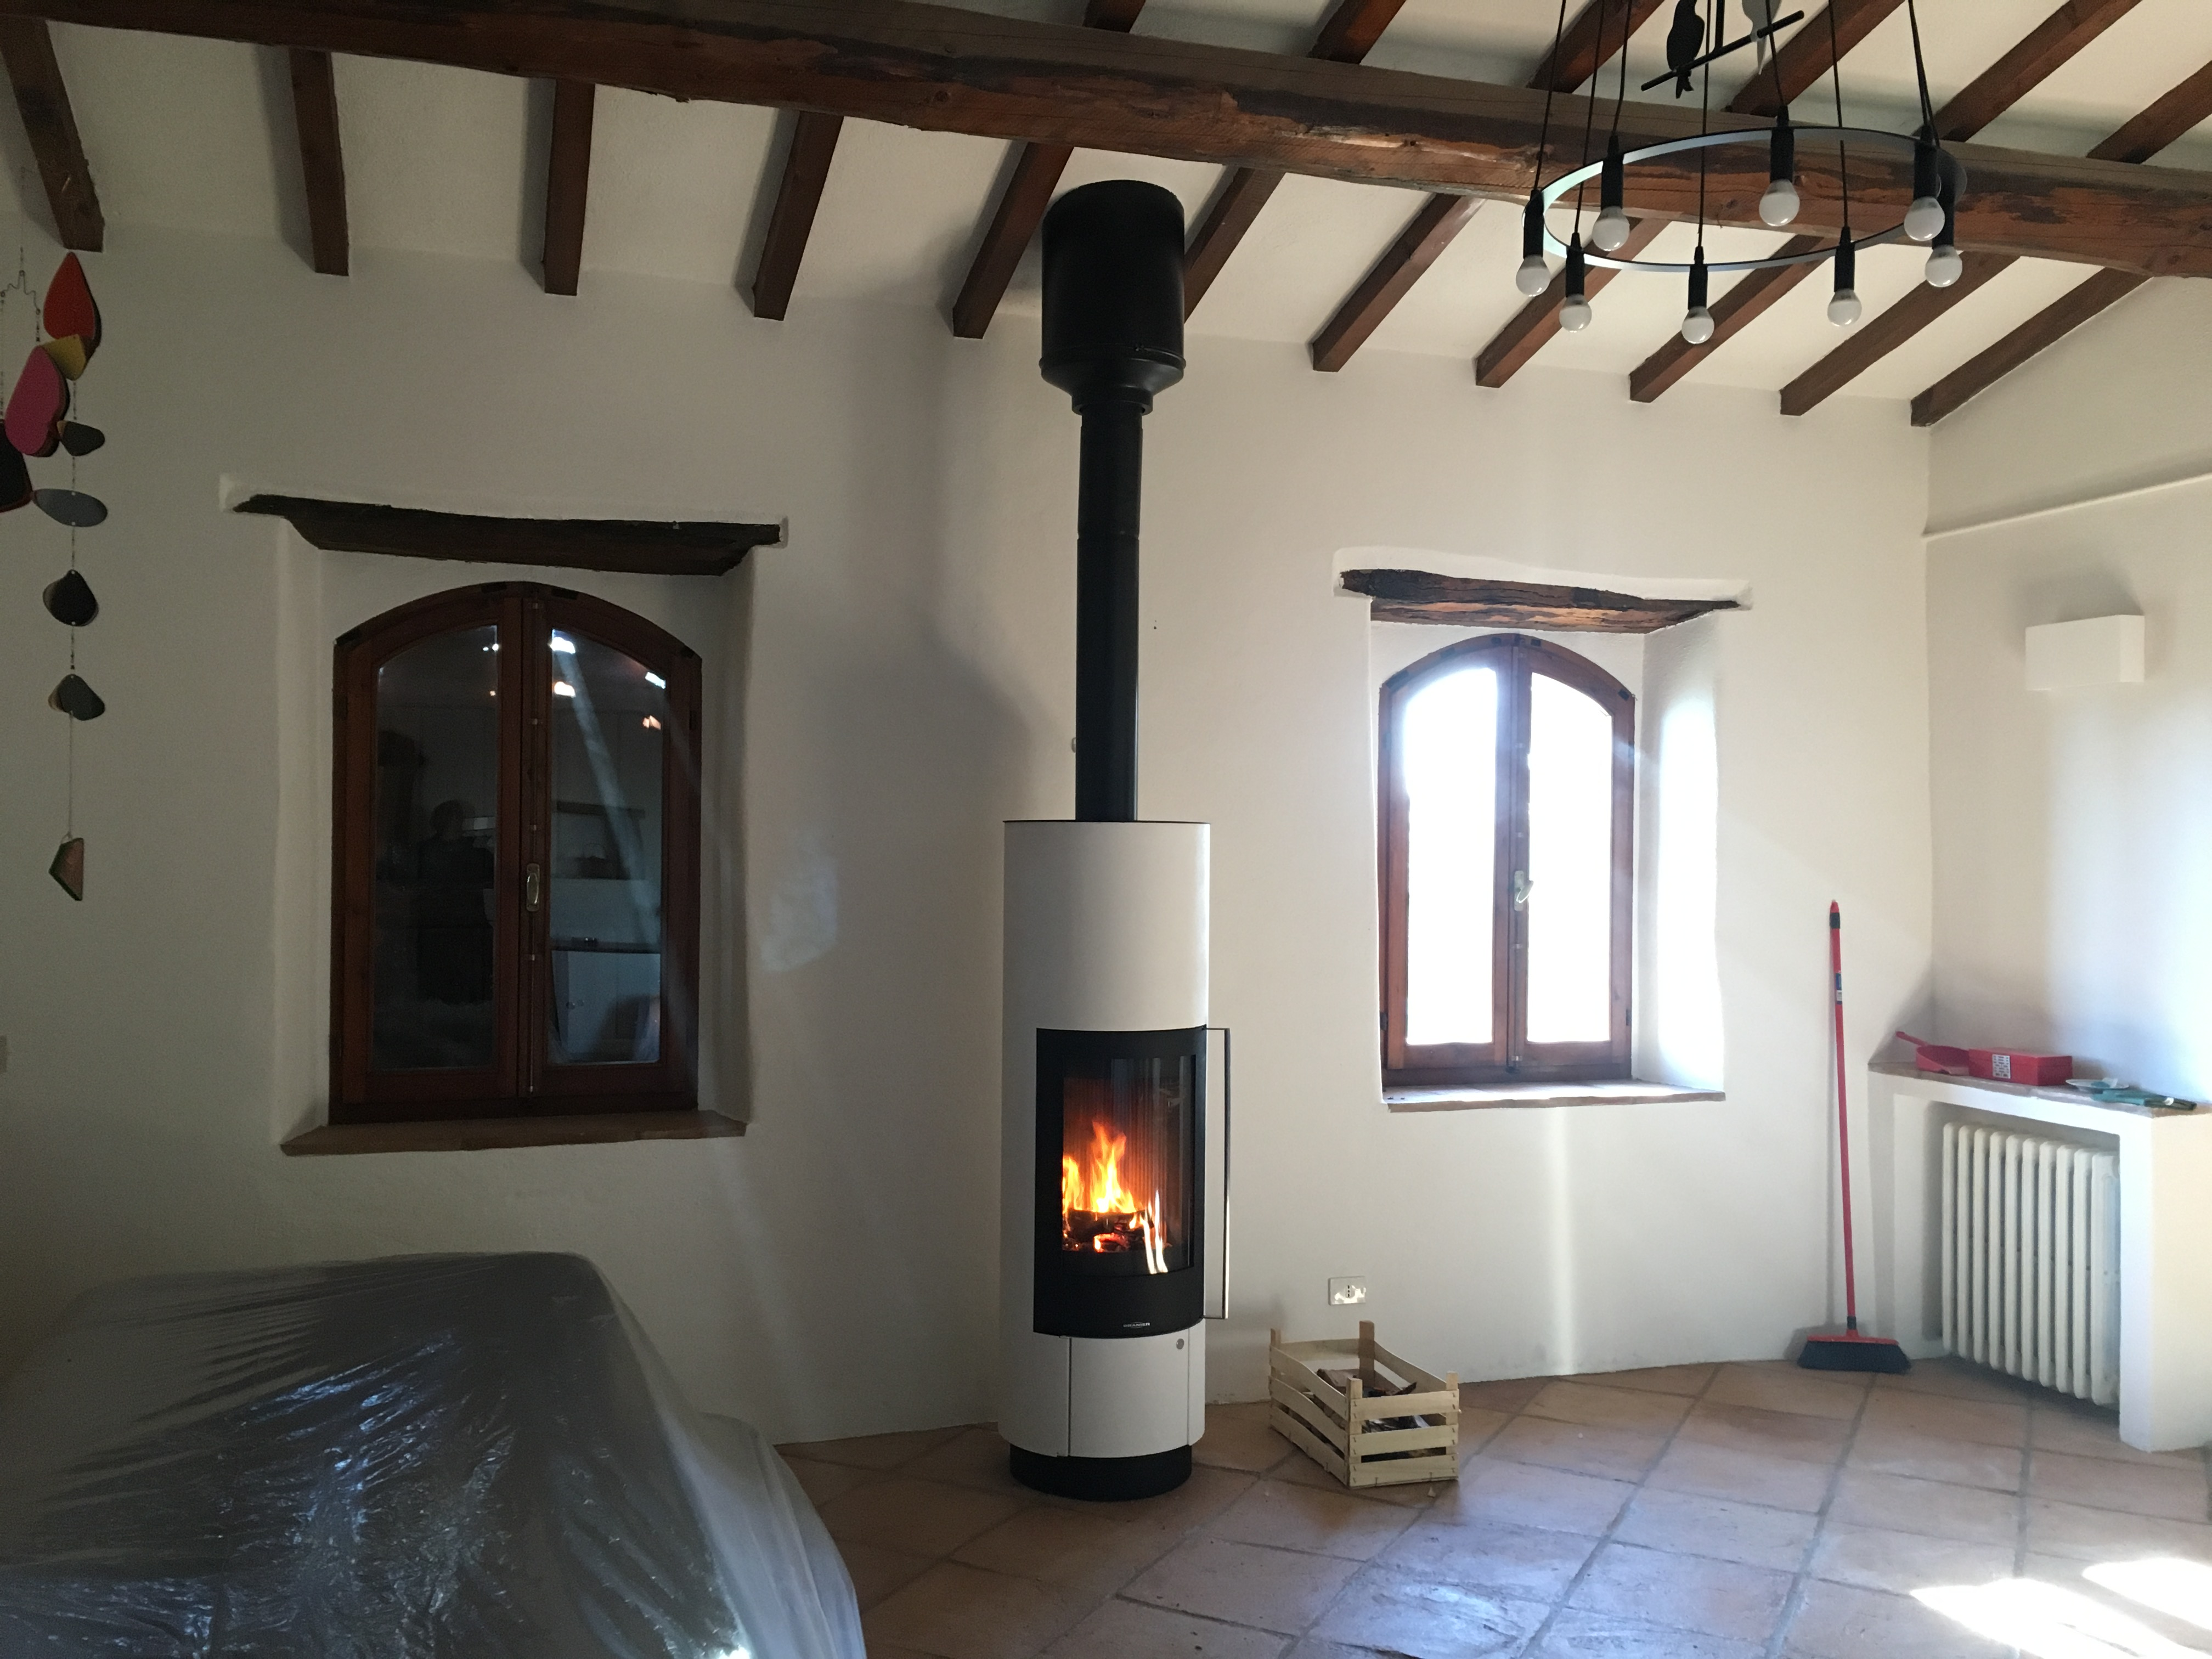 Wood Burning Stove In Restored Farmhouse In Umbria